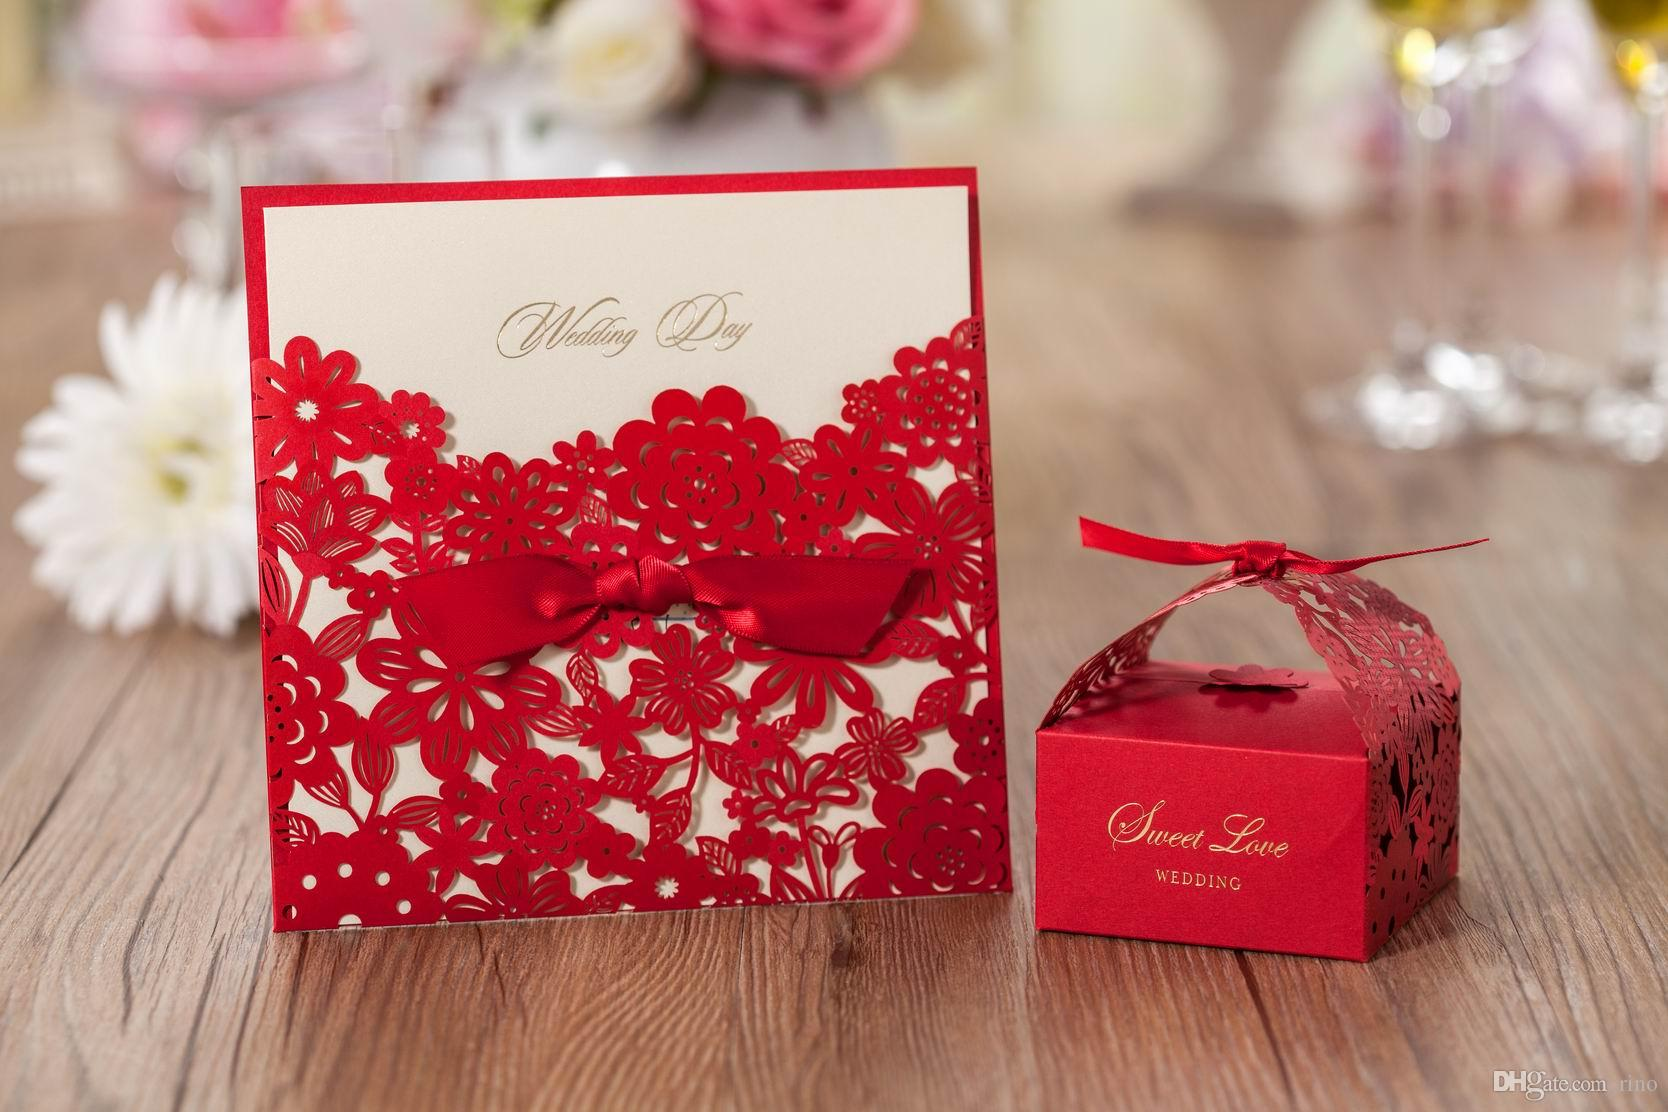 Wedding Favors Gift Boxes Candy Box Party Favors Hollow Wedding Candy Box Favor Chocolate Boxes candy bags cake boxes